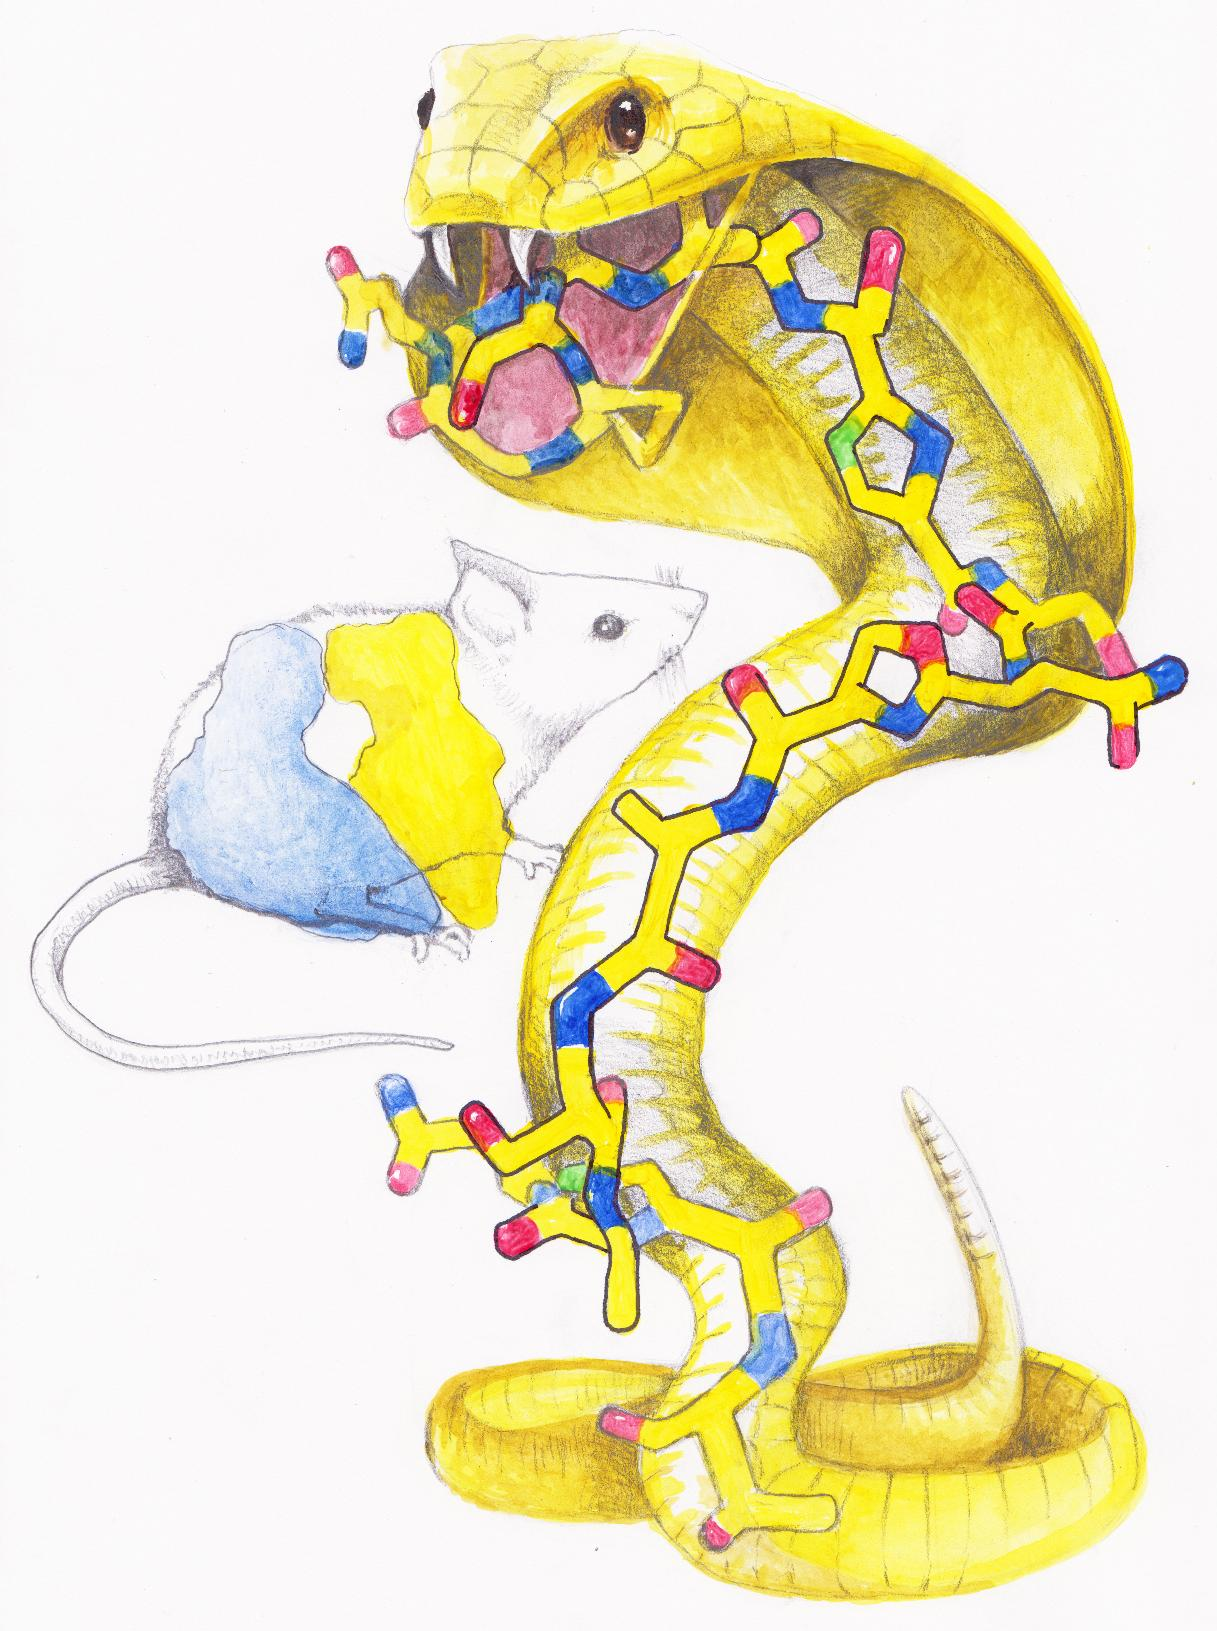 In this artistic rendition of the KLB antibiotic action, the KLB molecule, which has a snake-like appearance and is drawn as a cobra, is posed to attack a ribosome, drawn as a stunned mouse. The actual size of the ribisome is much larger than the size of the KLB molecule. Illustration: by Maxim Svetlov.